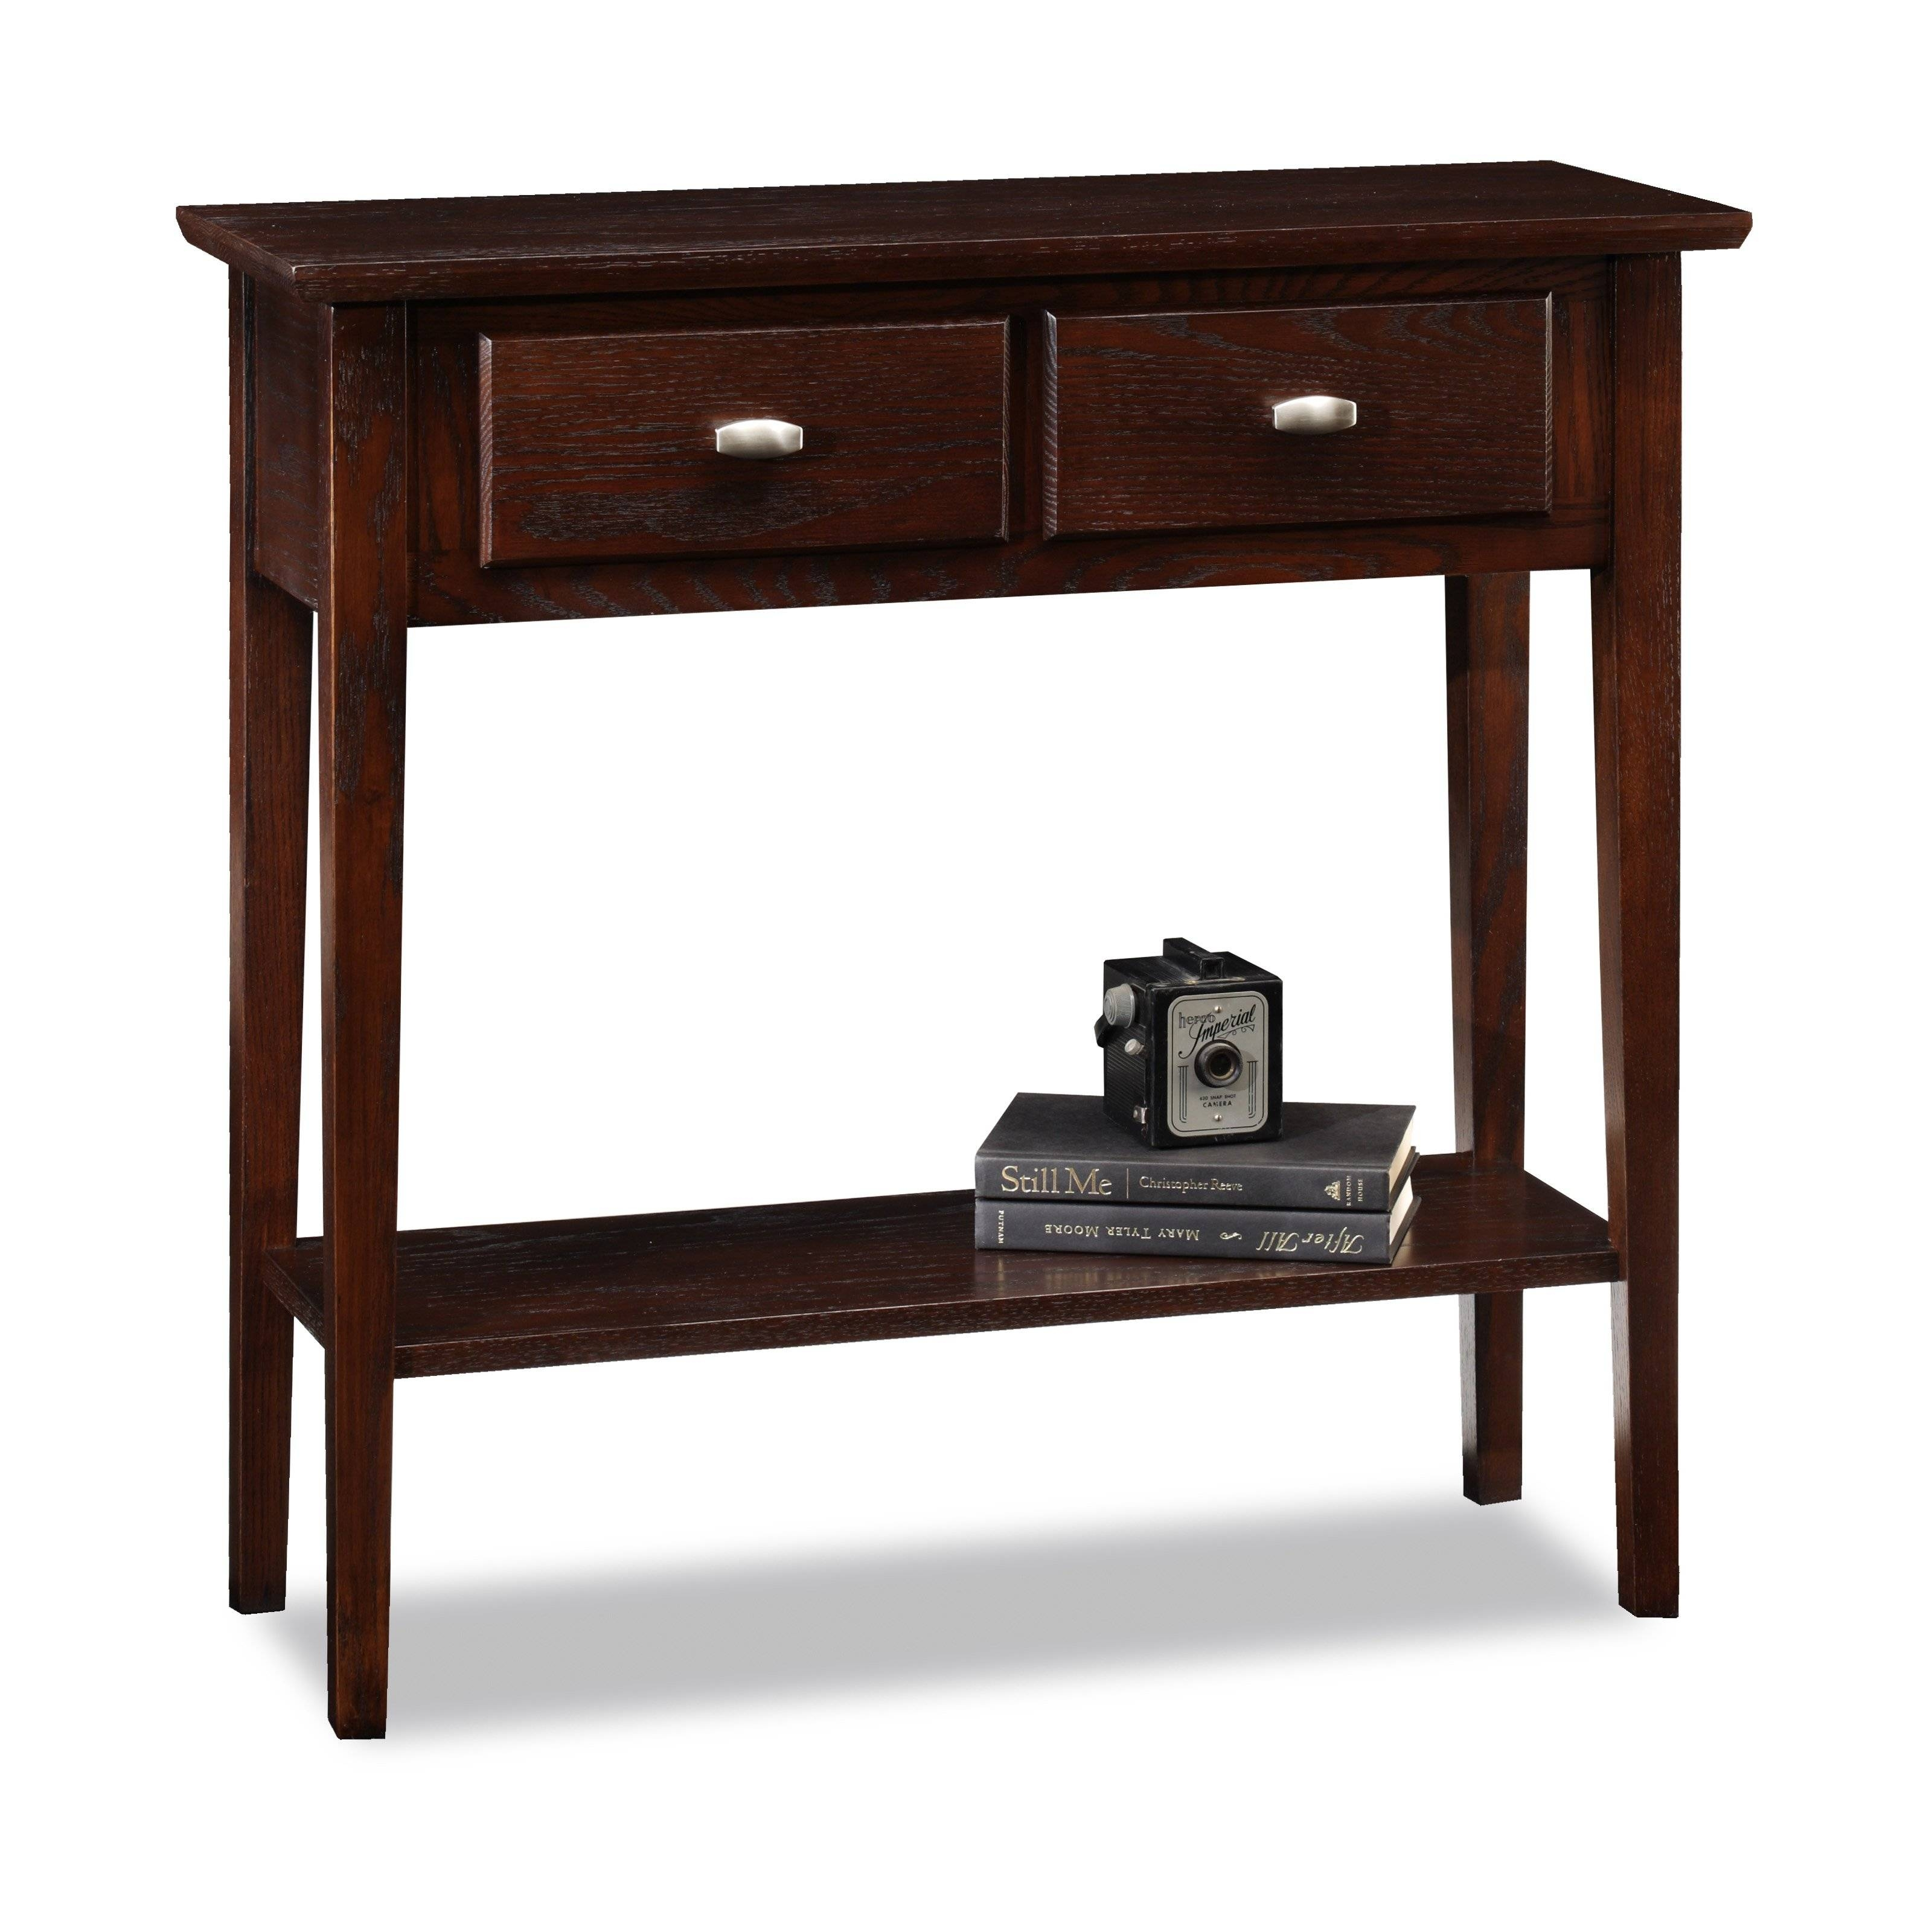 Leick Hall Console / Sofa Table - Chocolate Cherry | Hayneedle for Sofa Table Drawers (Image 13 of 30)